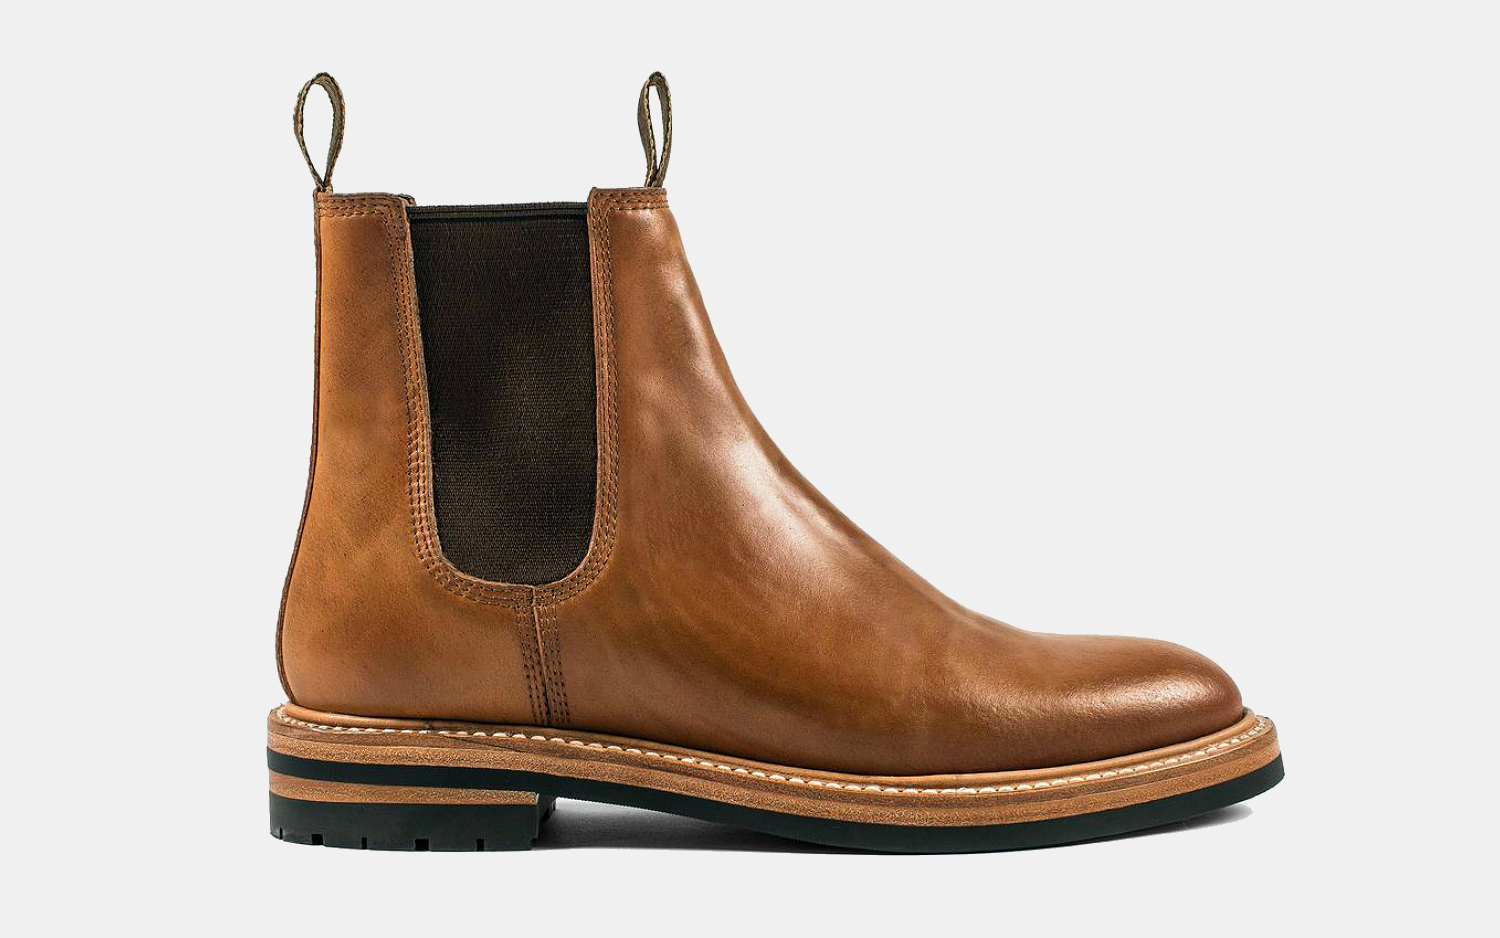 Taylor Stitch Ranch Boot in Whiskey Cordovan